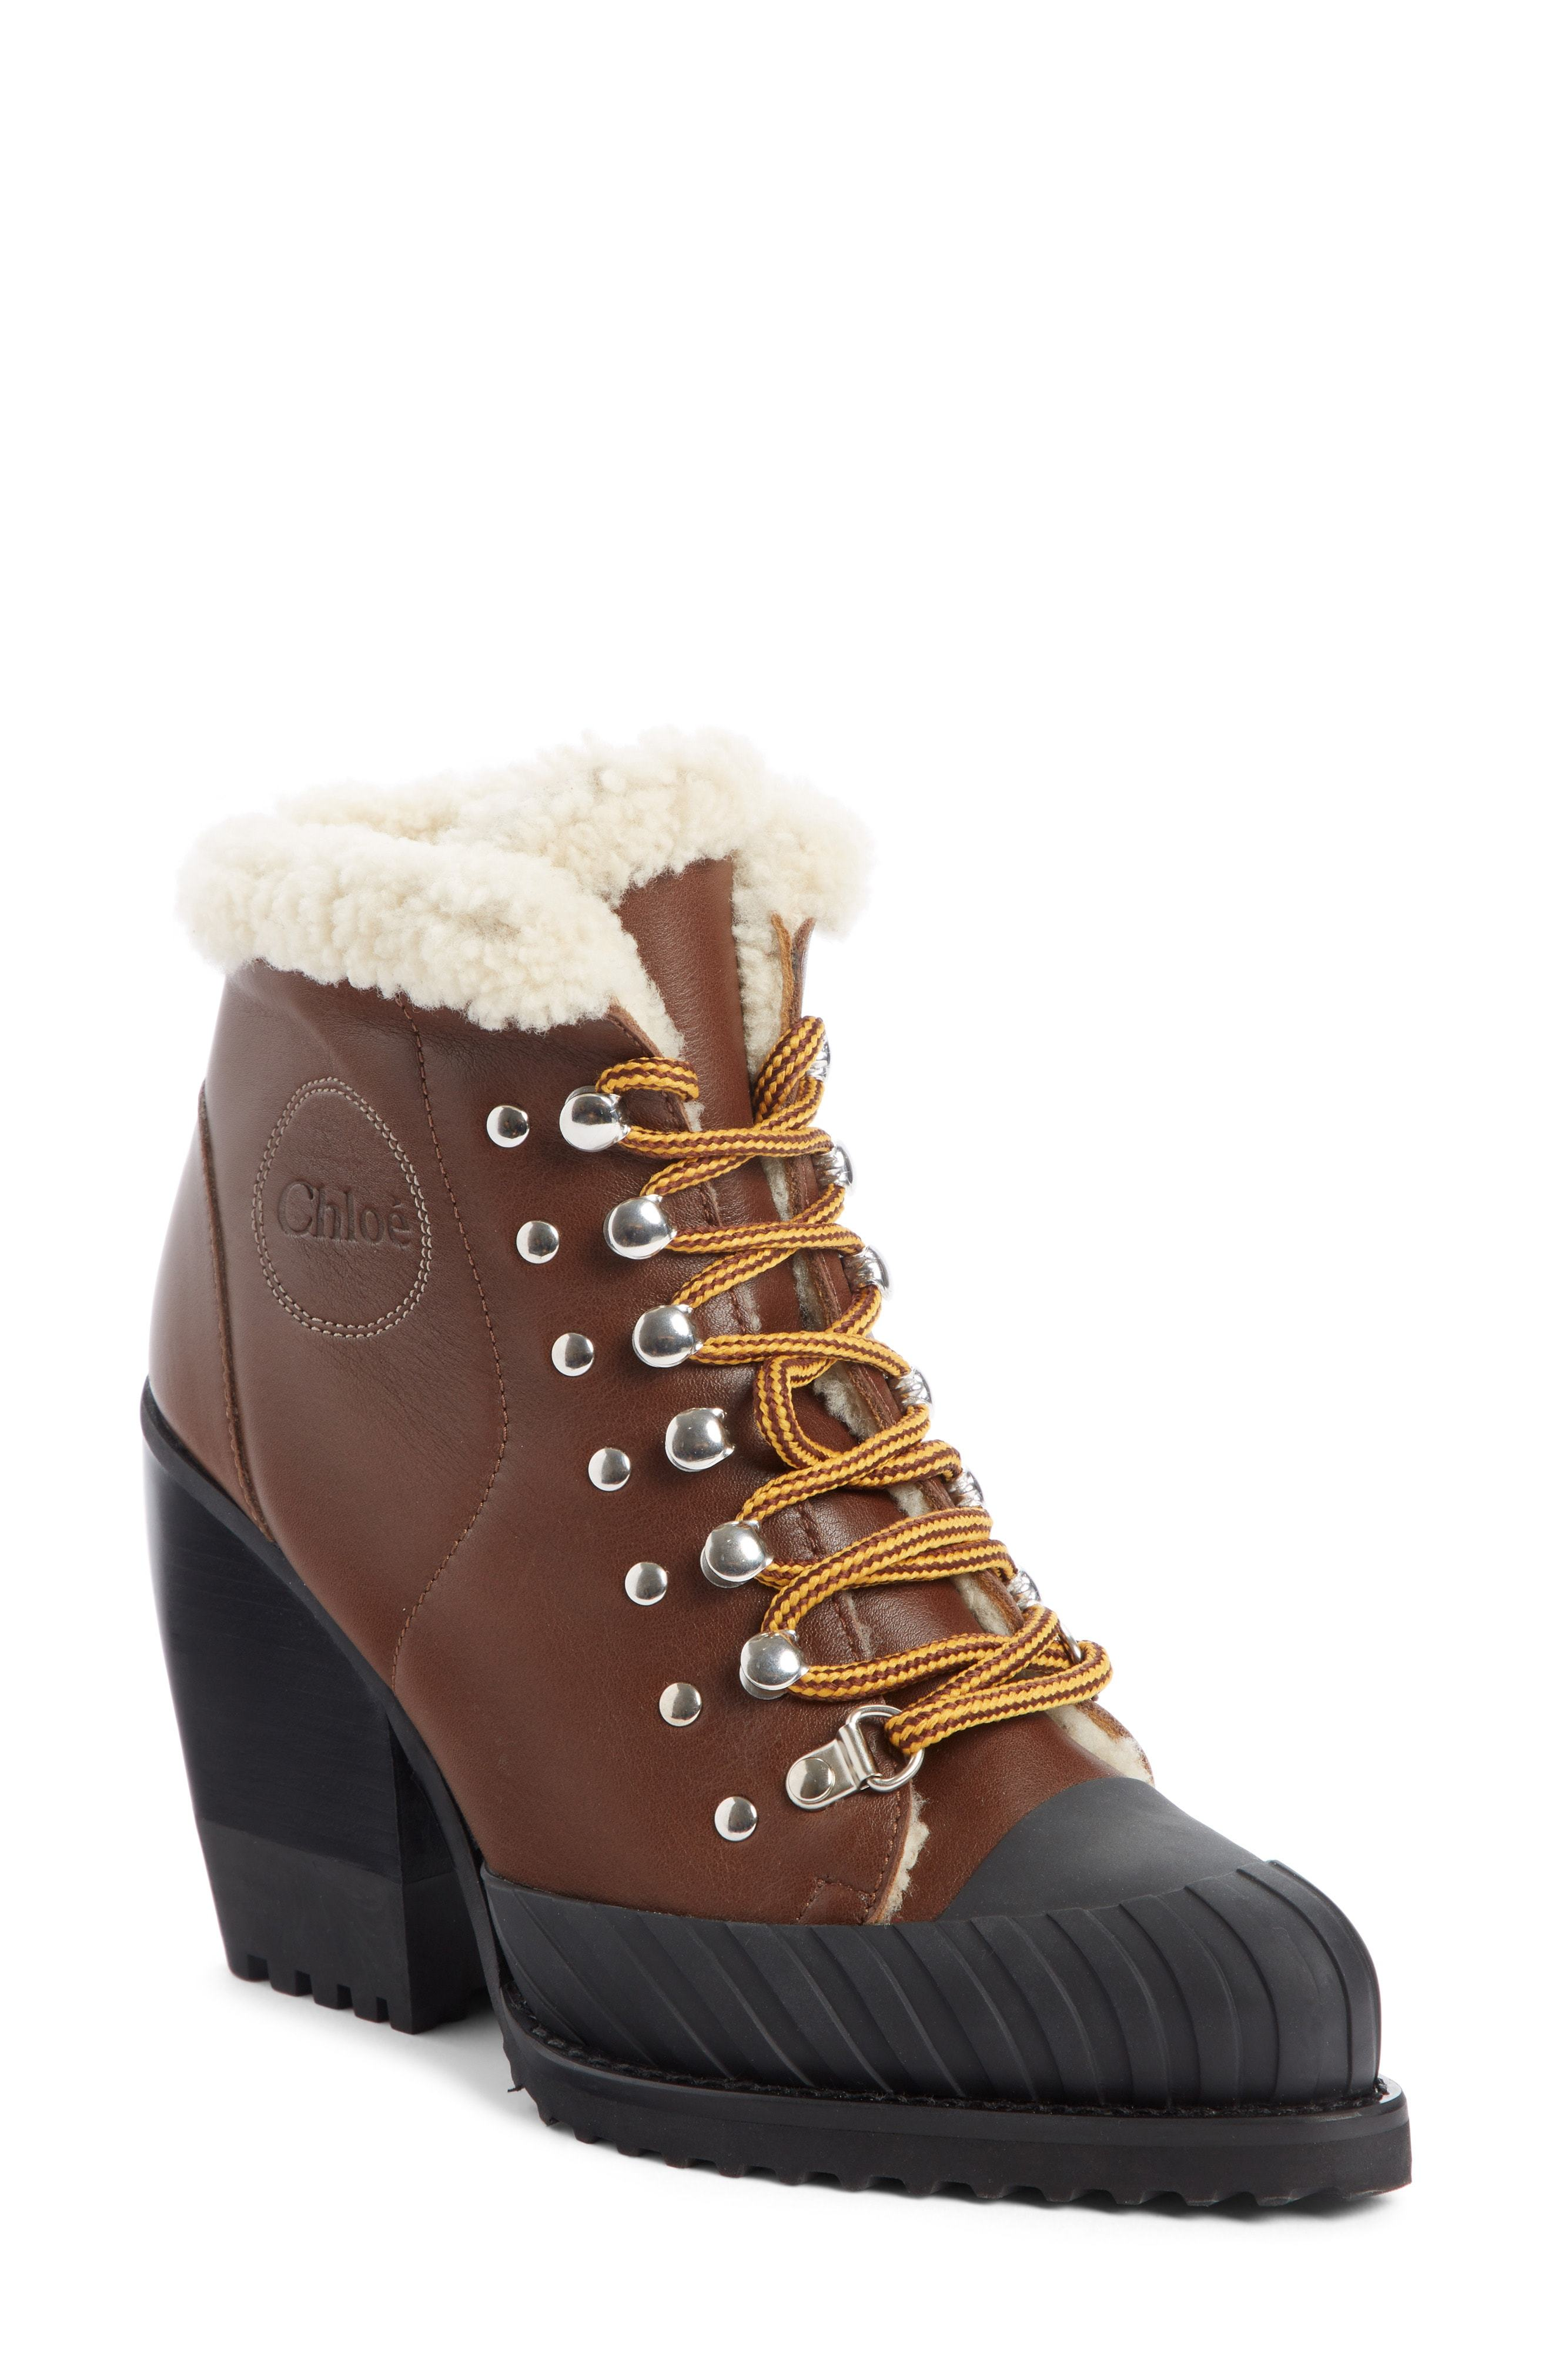 41c26e0dc6d Rylee Genuine Shearling Lined Hiking Boot